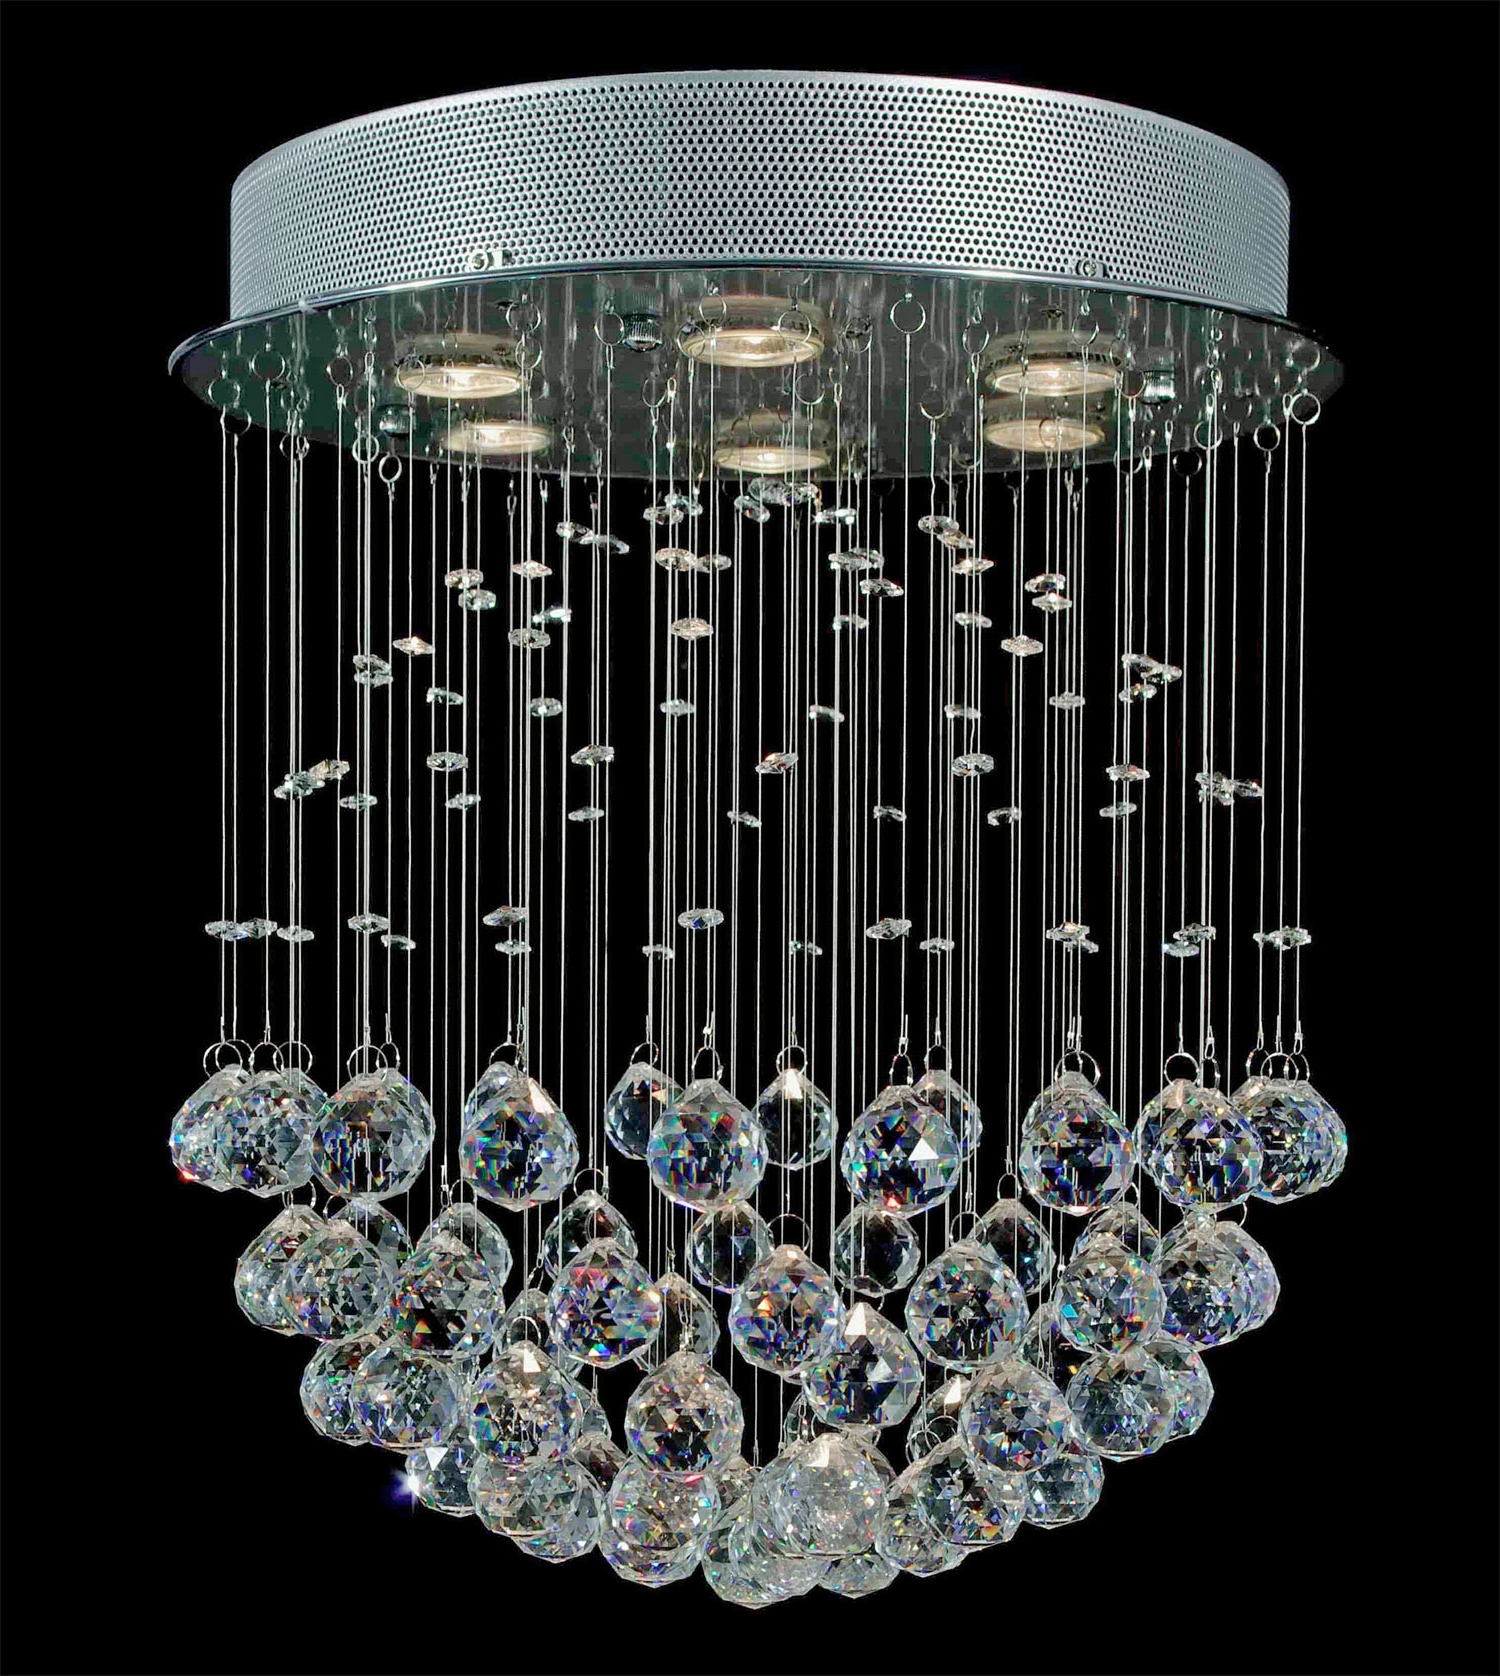 Small Red Chandelier With Most Recent Chandeliers Design : Wonderful Tear Drop Crystal Chandelier Lighting (View 17 of 20)